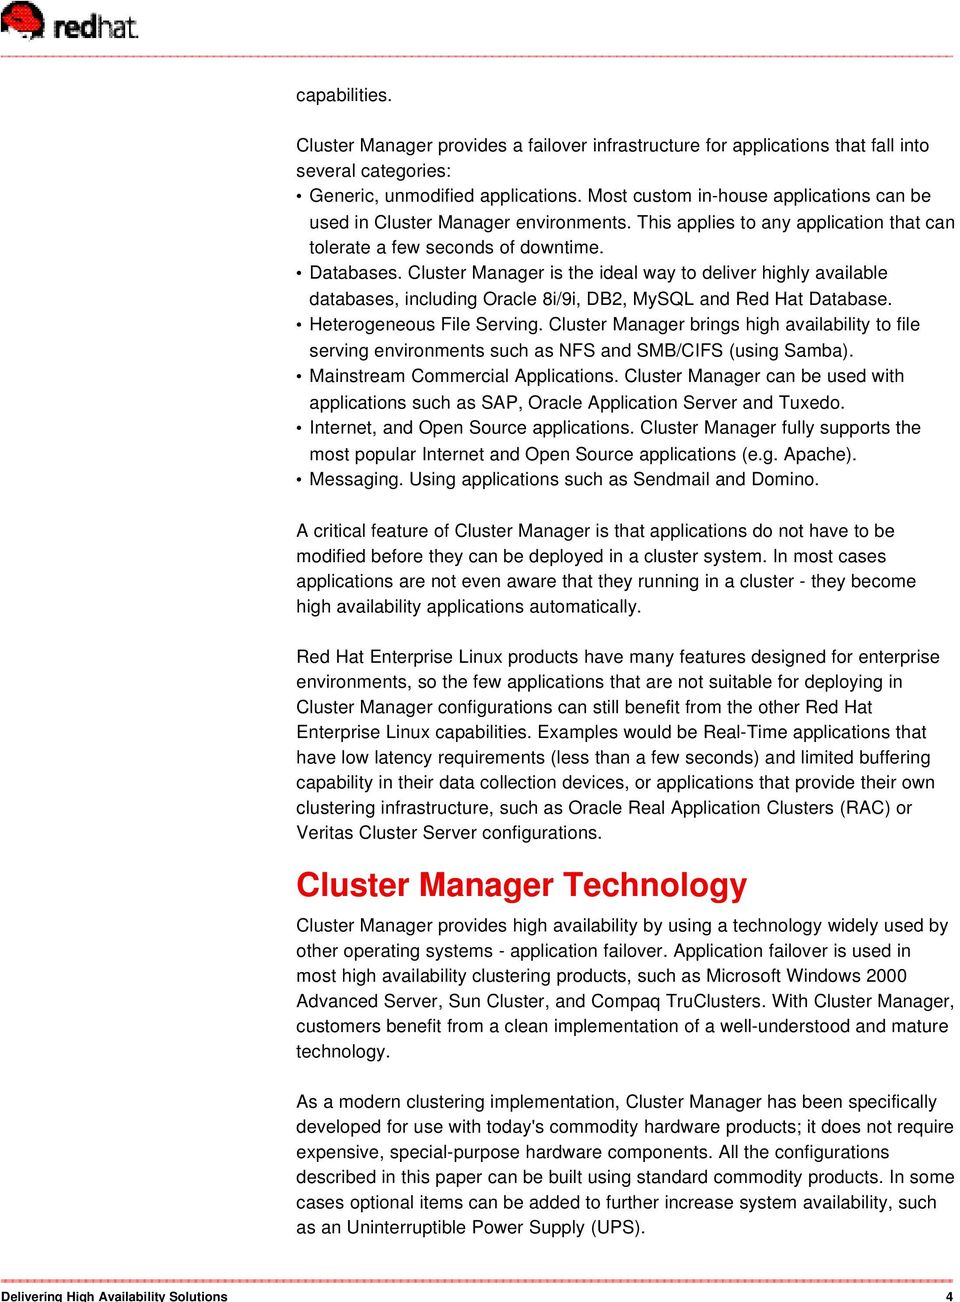 Cluster Manager is the ideal way to deliver highly available databases, including Oracle 8i/9i, DB2, MySQL and Red Hat Database. Heterogeneous File Serving.